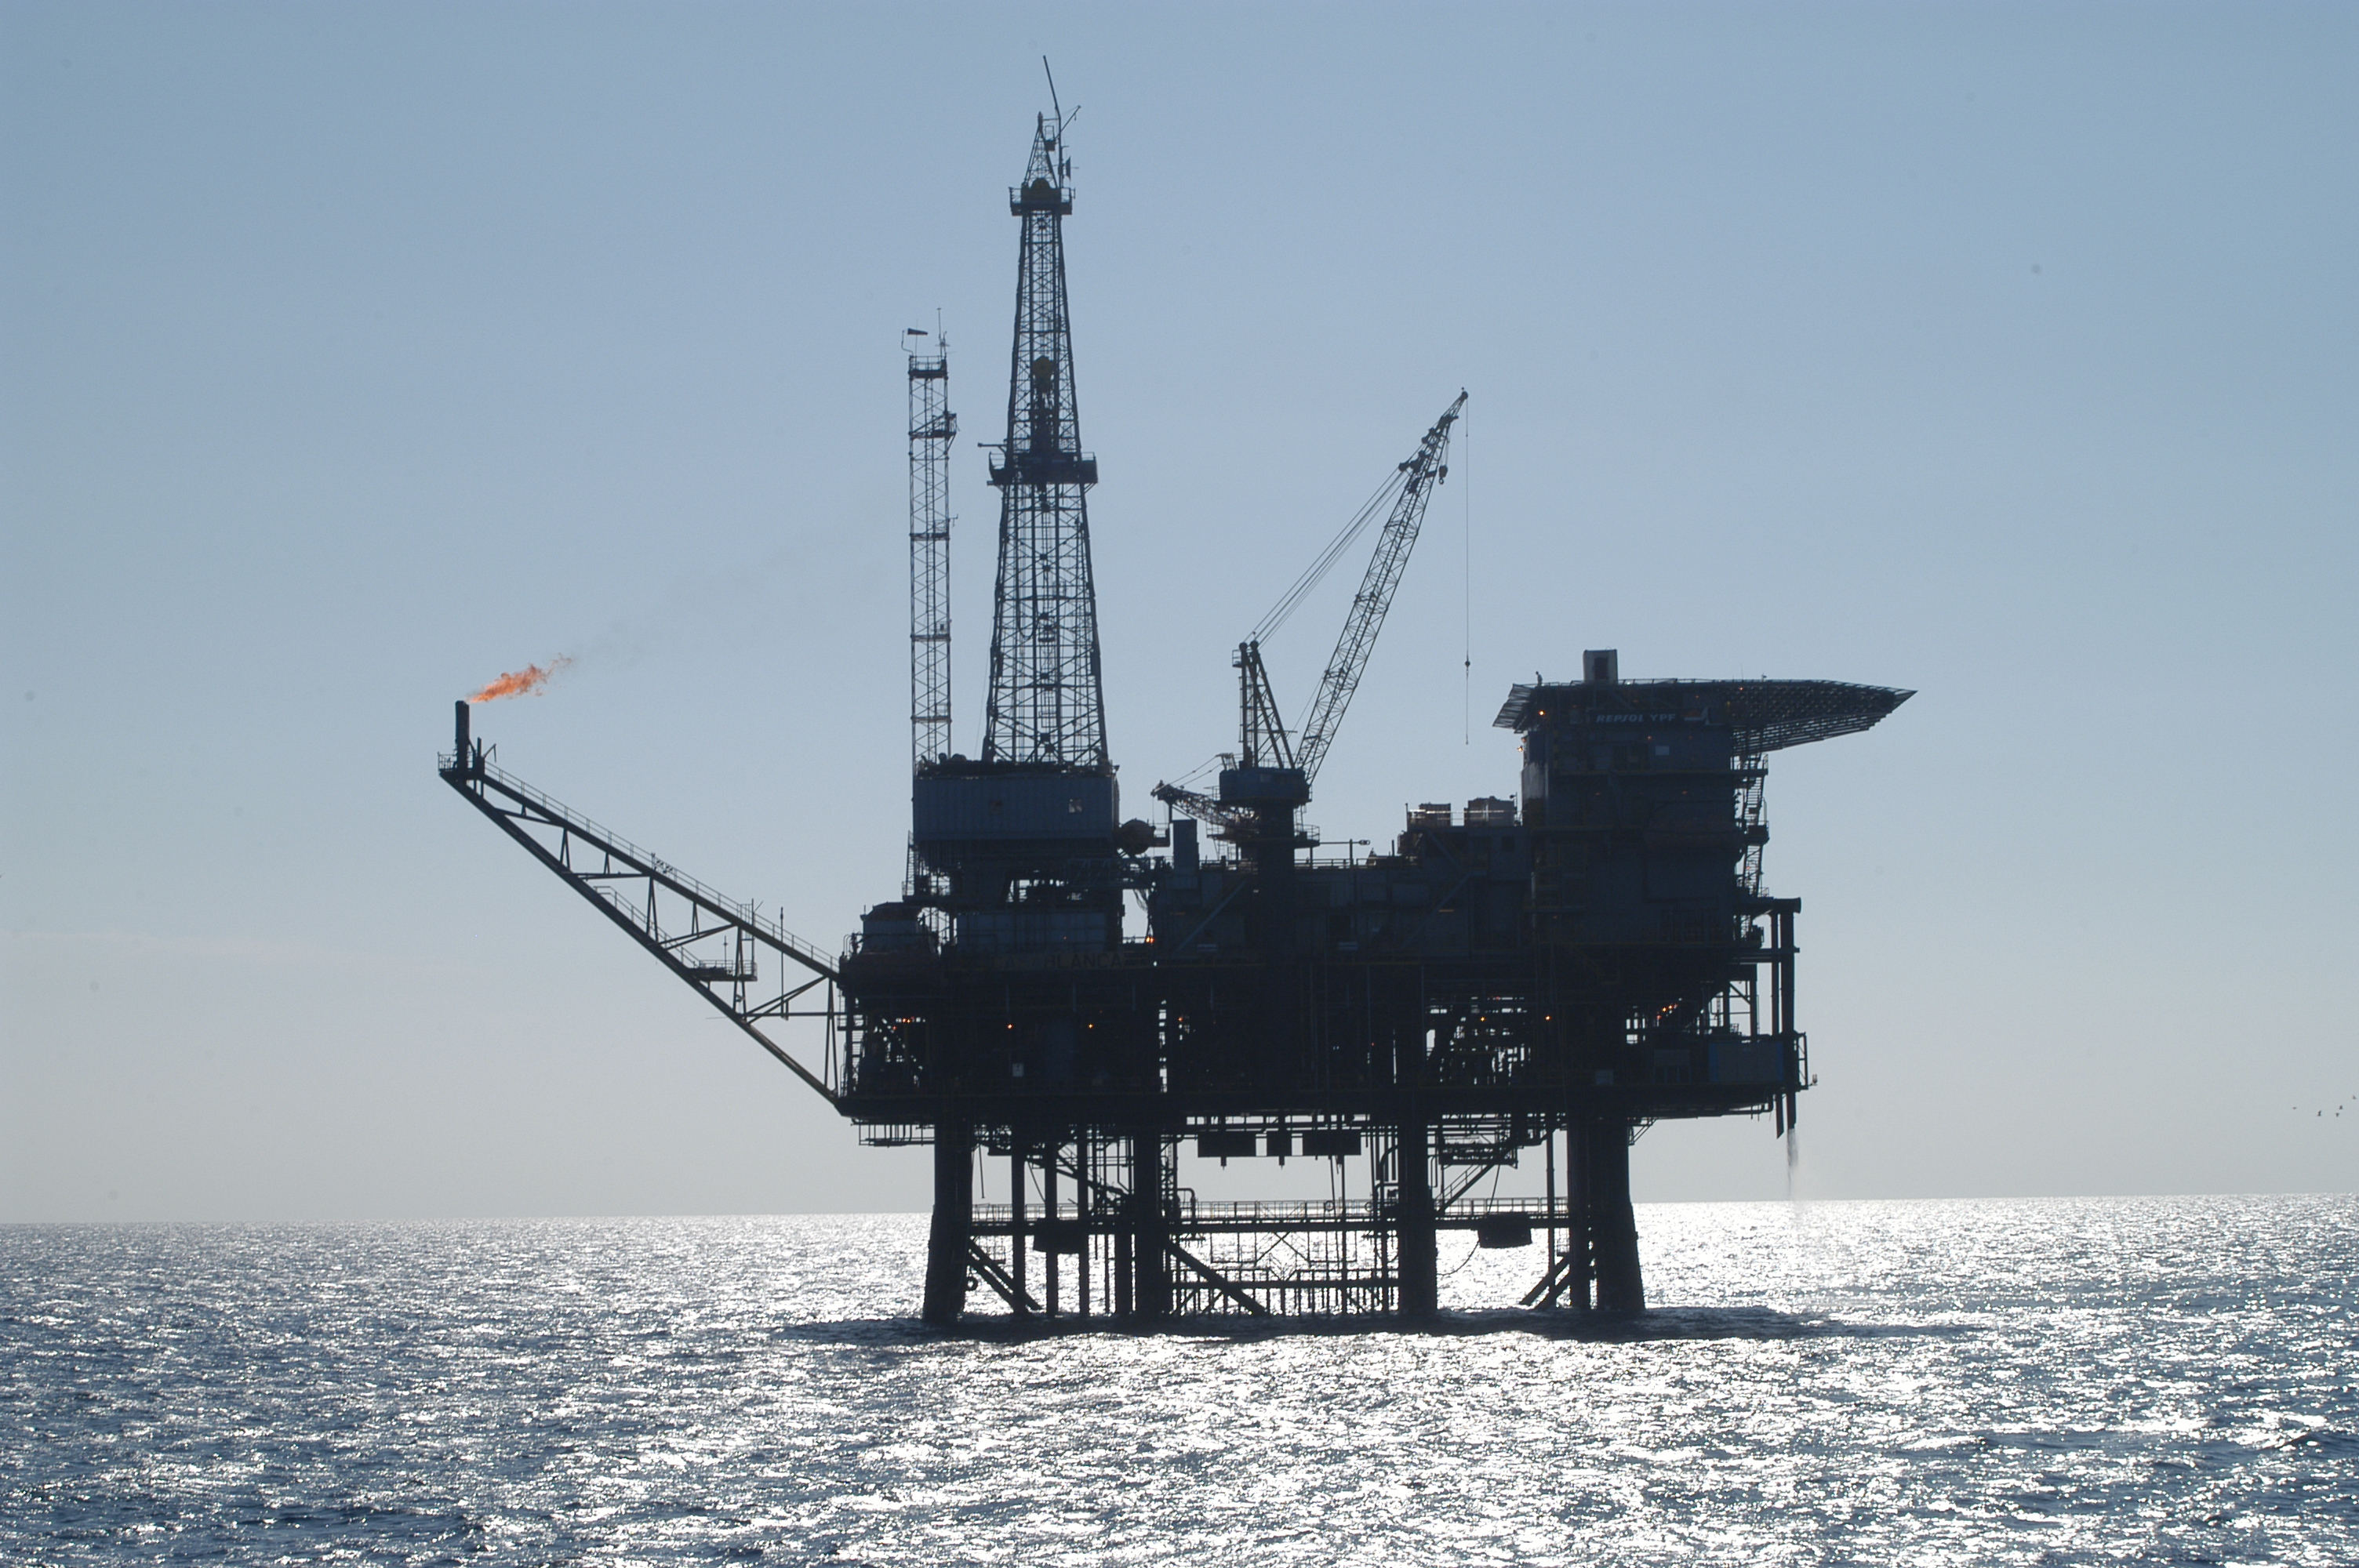 Federal judge allows South Carolina lawsuit over offshore drilling to proceed